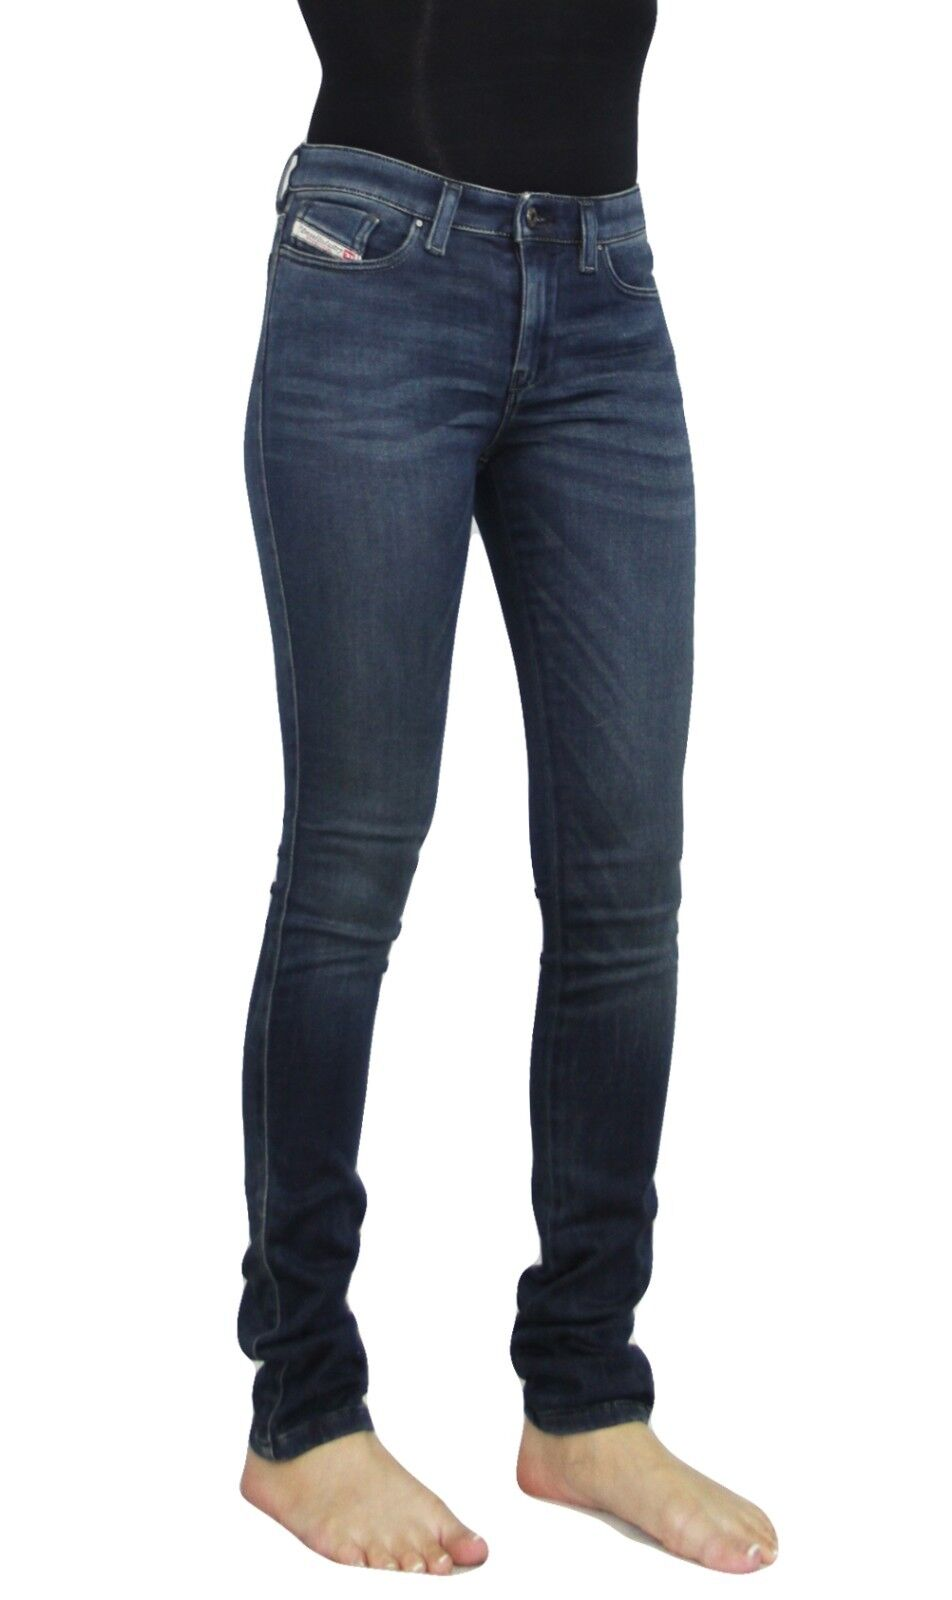 NWT Diesel Women's Skinzee Sateen Super Stretchy Skinny Jeans, Trousers 834R